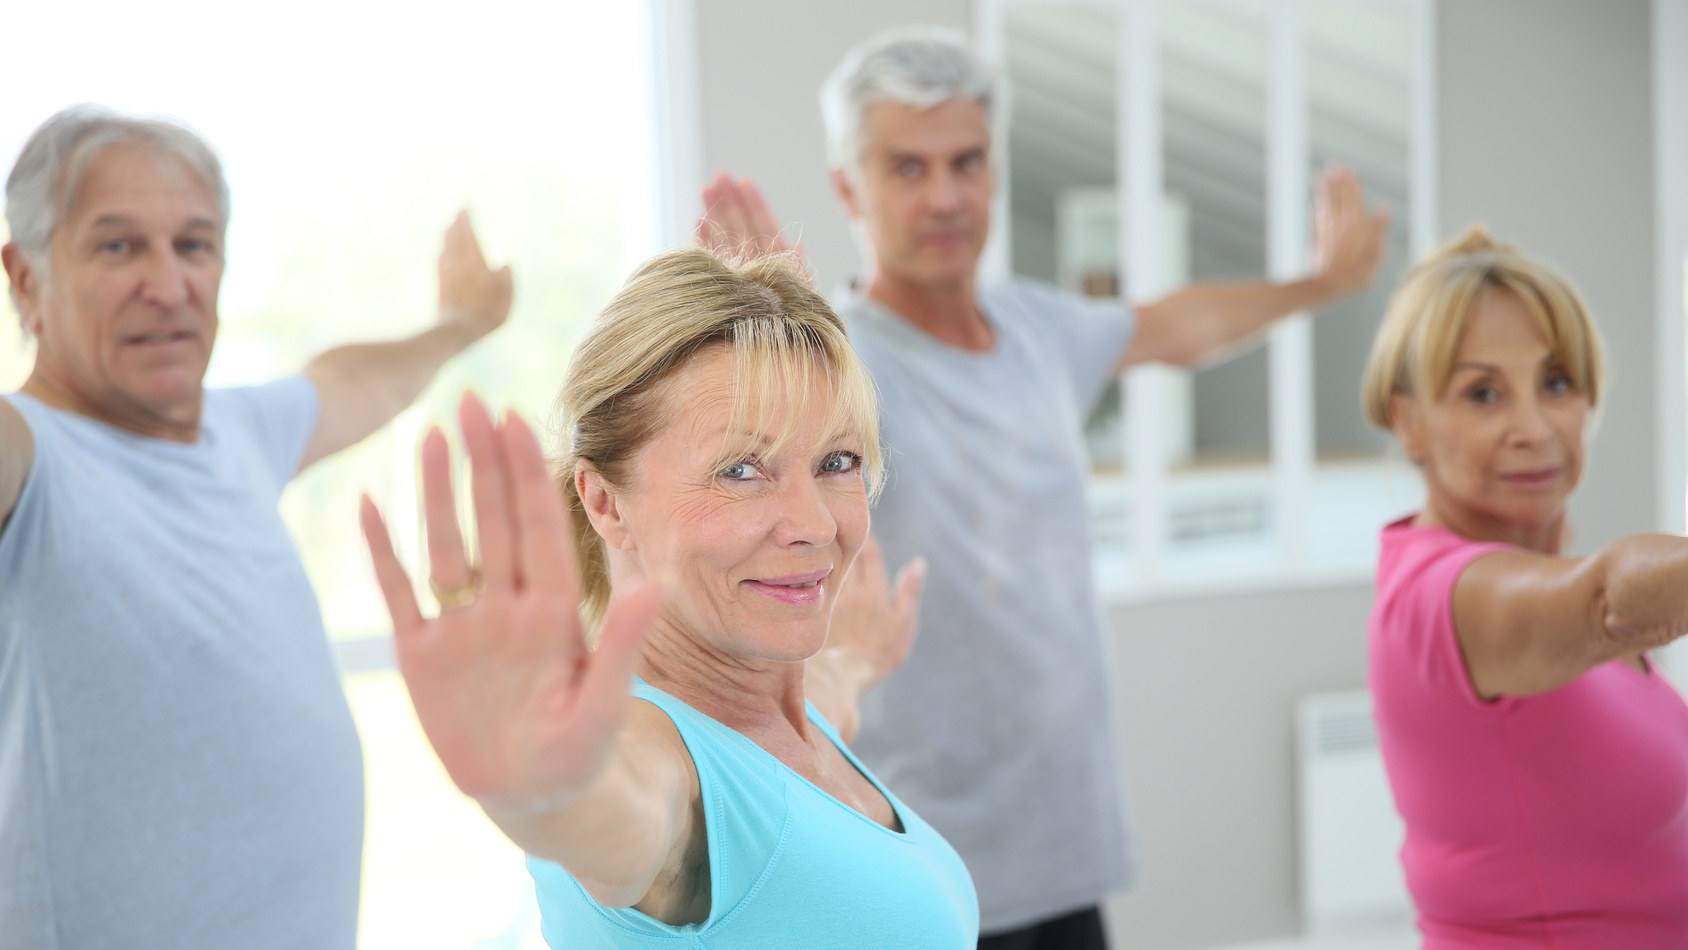 Yoga class with seniors, Yoga for spinal health, Yoga over 50